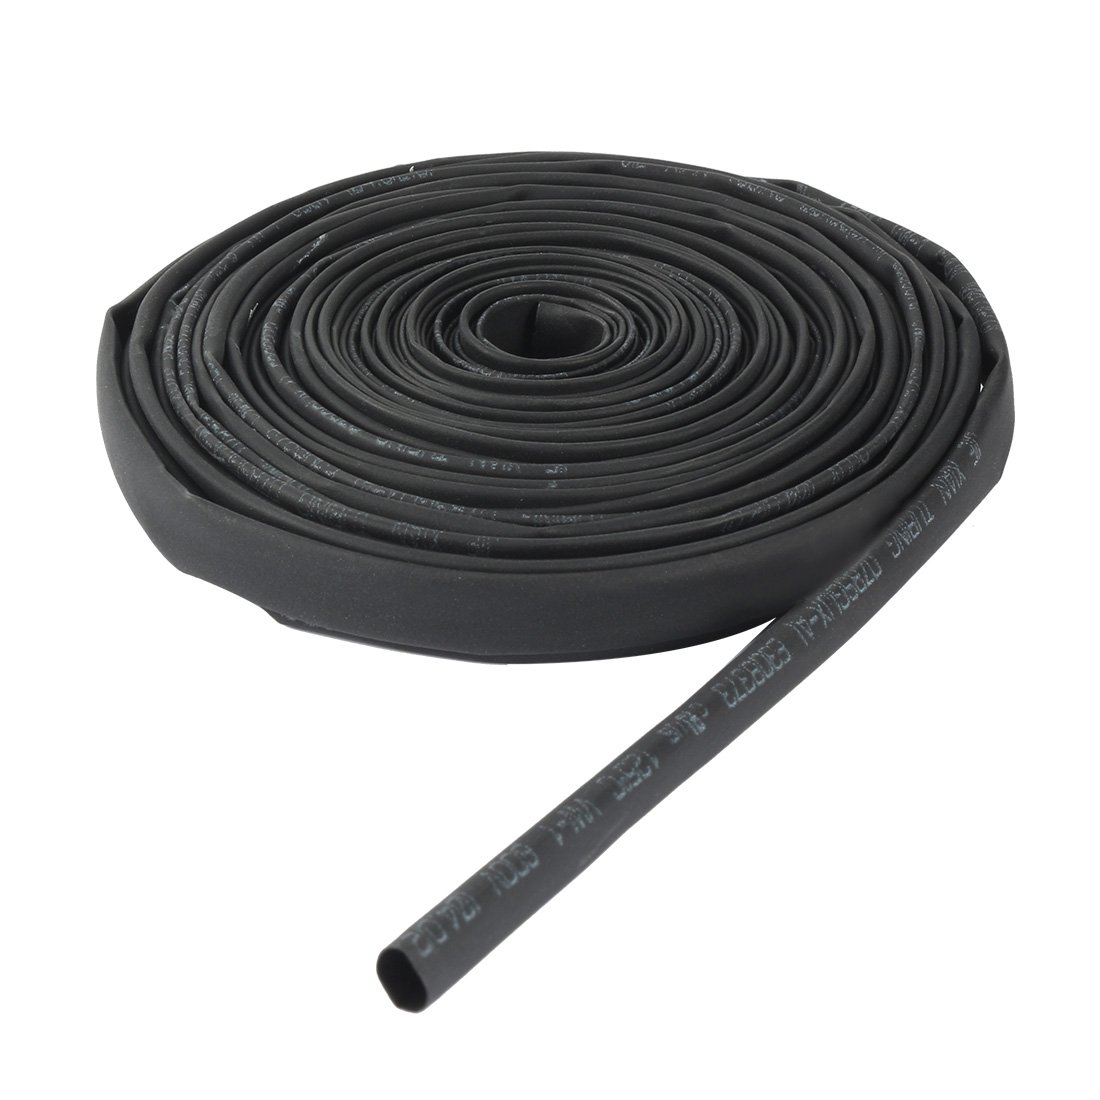 Aexit 4mm 2:1 Electric Motors Ratio Heat Shrink Tube Wire Wrap Cable Sleeve Tubing 6 Meters Fan Motors Length Black